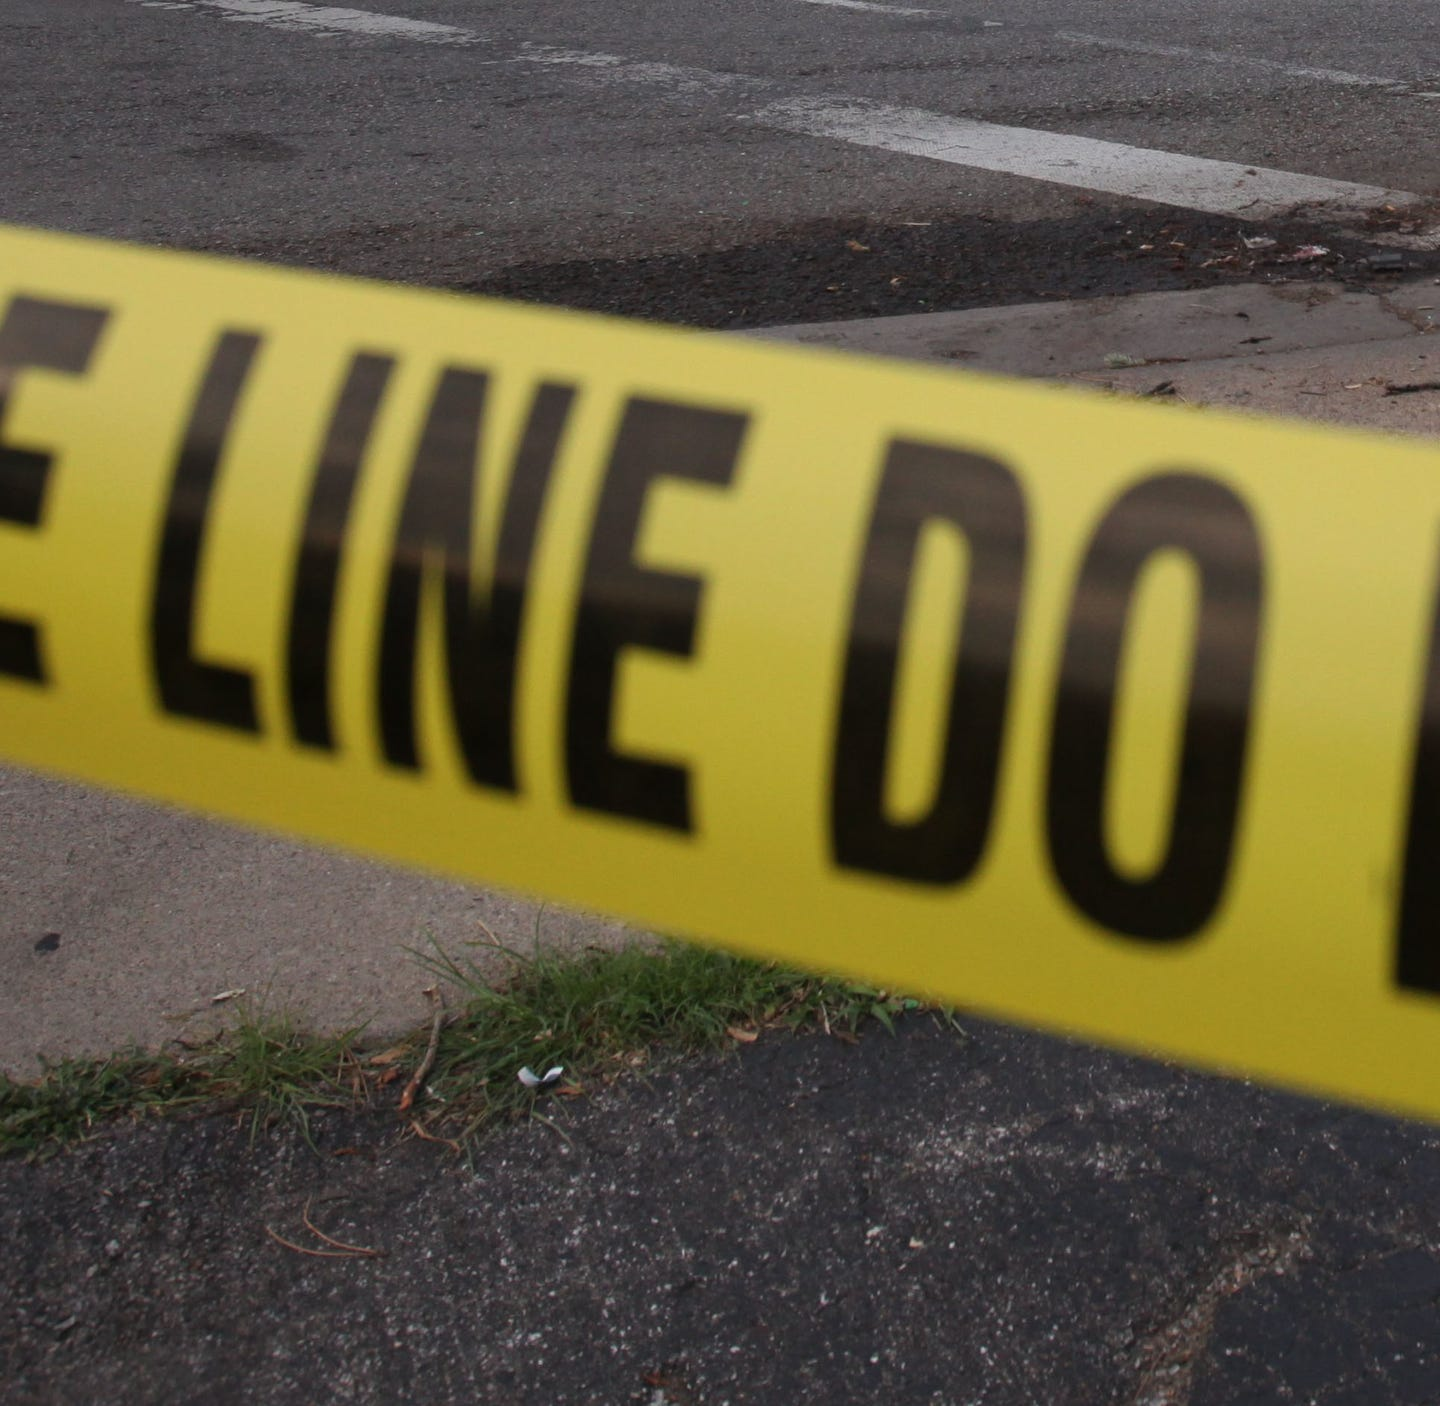 Man injured in Easter Sunday shooting in Detroit